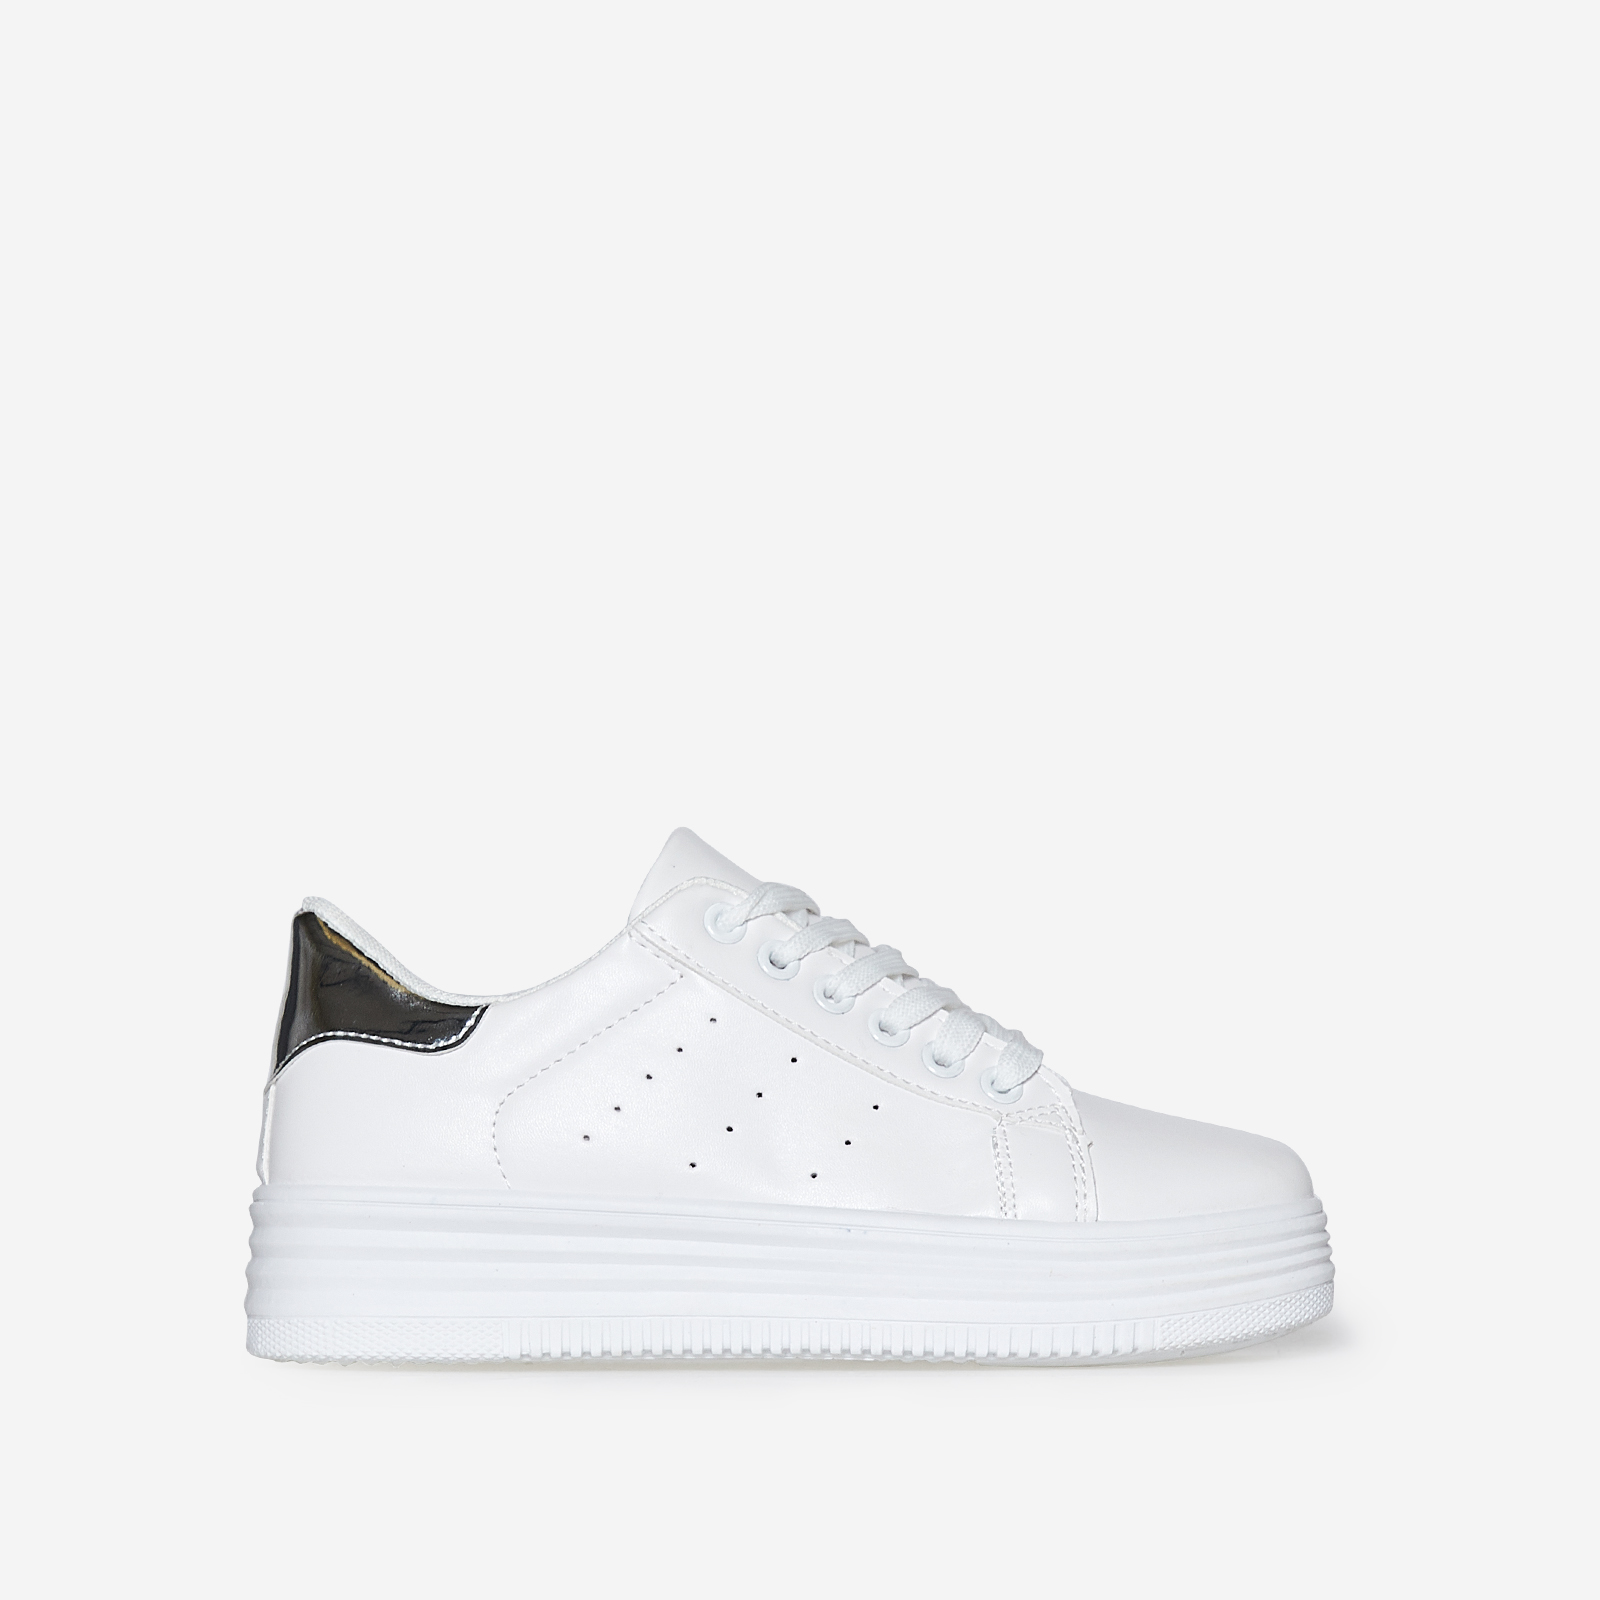 Horton Oversized Trainer With Silver Heel Tab In White Faux Leather